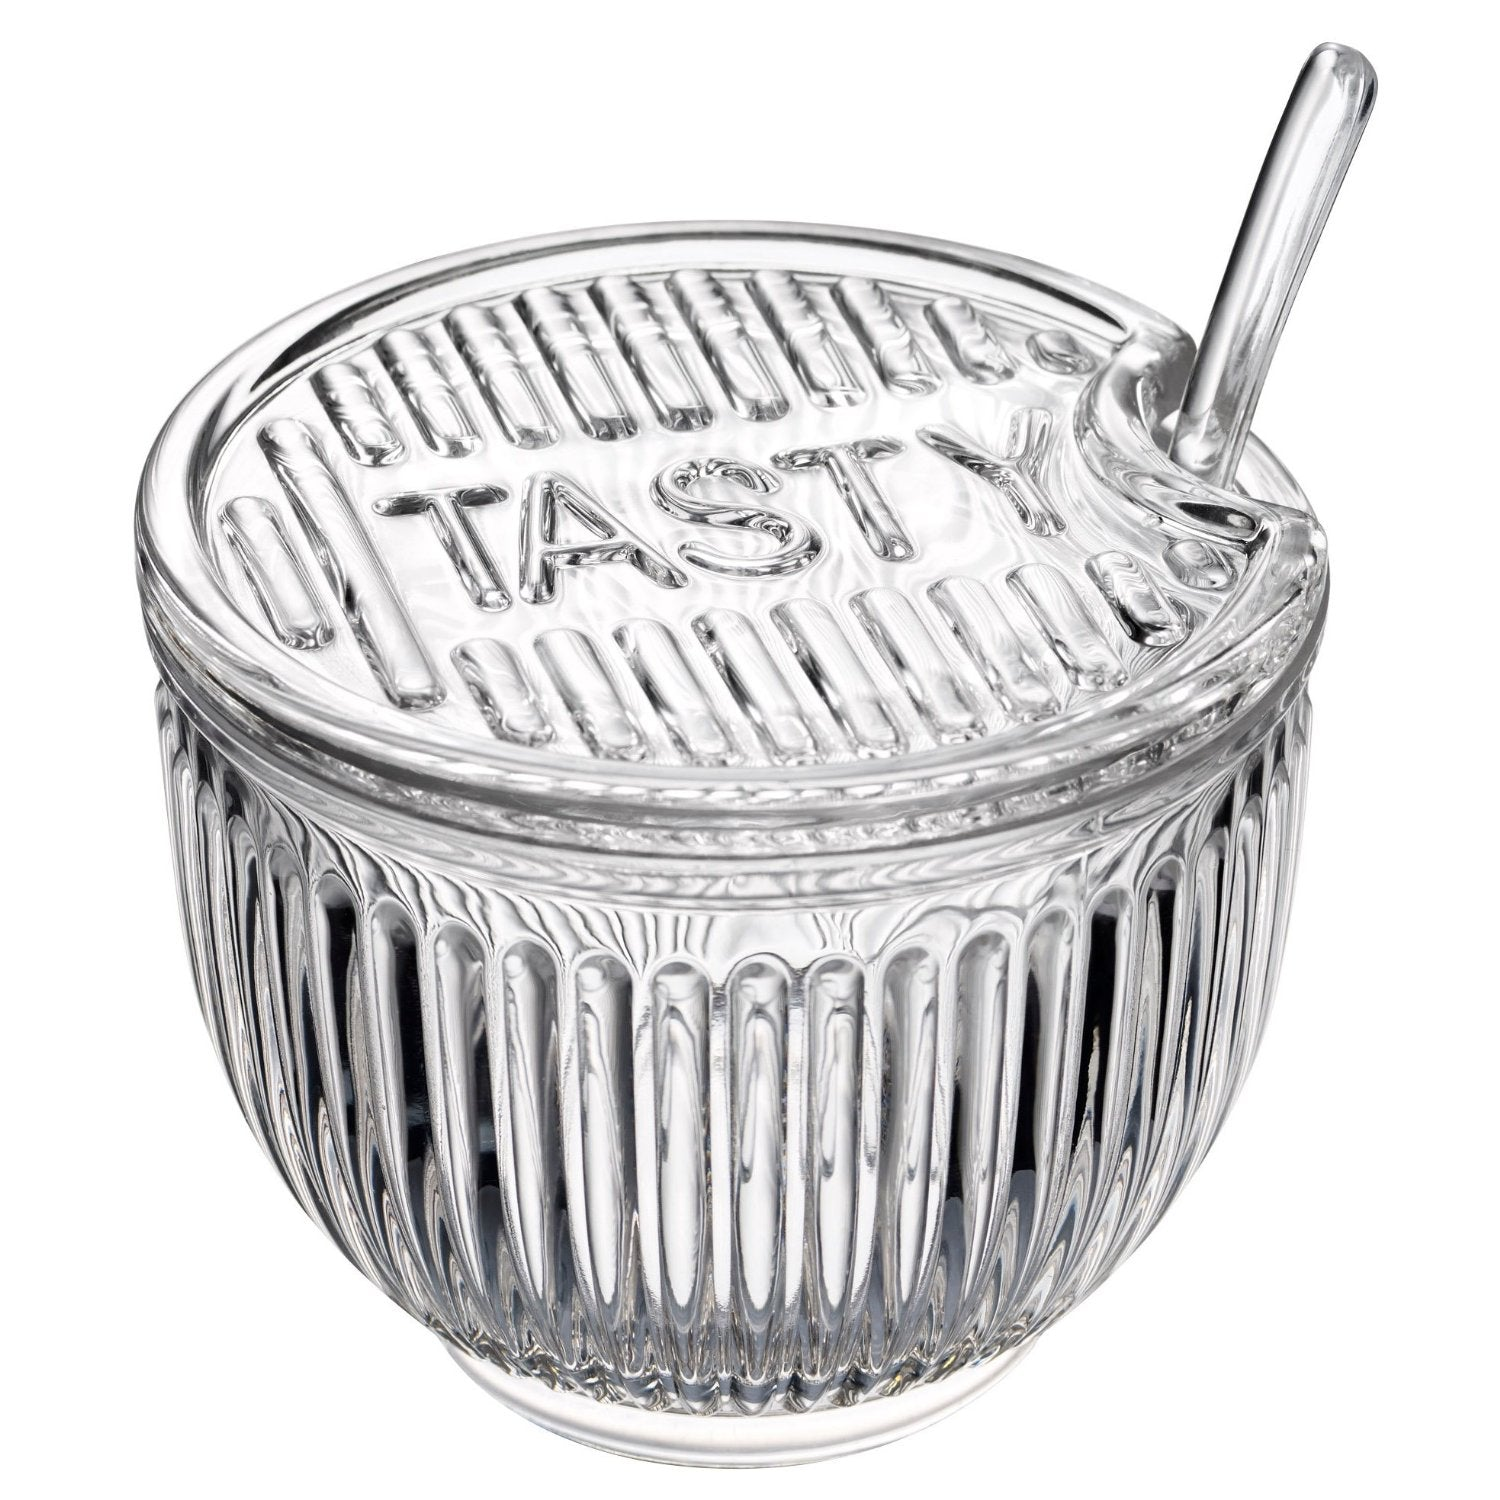 Tasty All-purpose Jar With Spoon